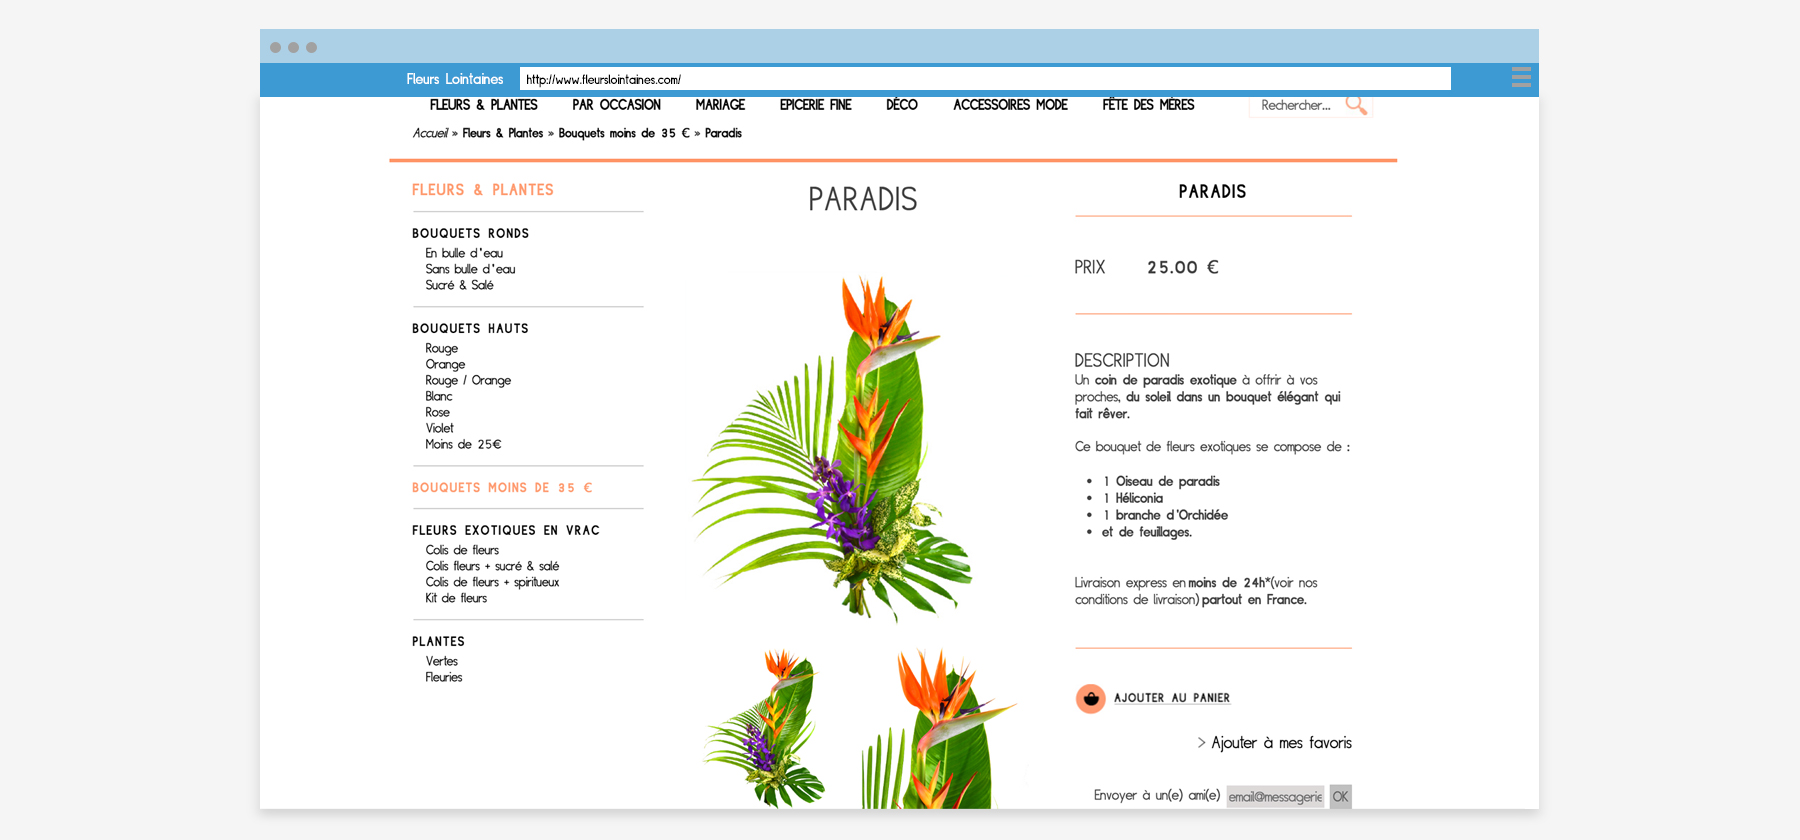 fleurs-lointaines-page-2